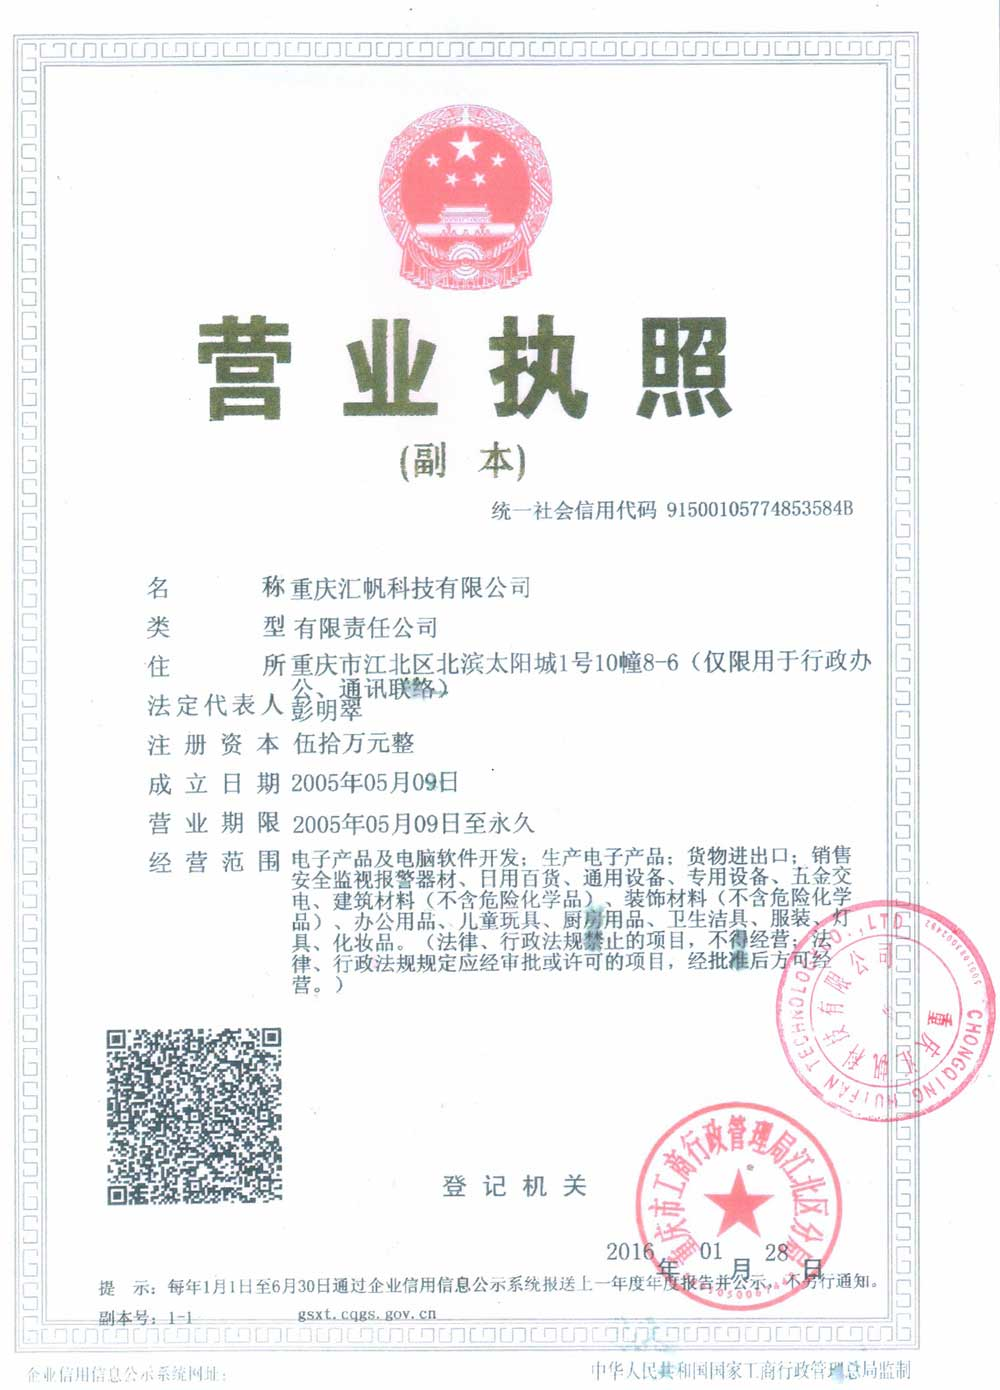 Registration Certificate of Chongqing Huifan Technology.,Ltd